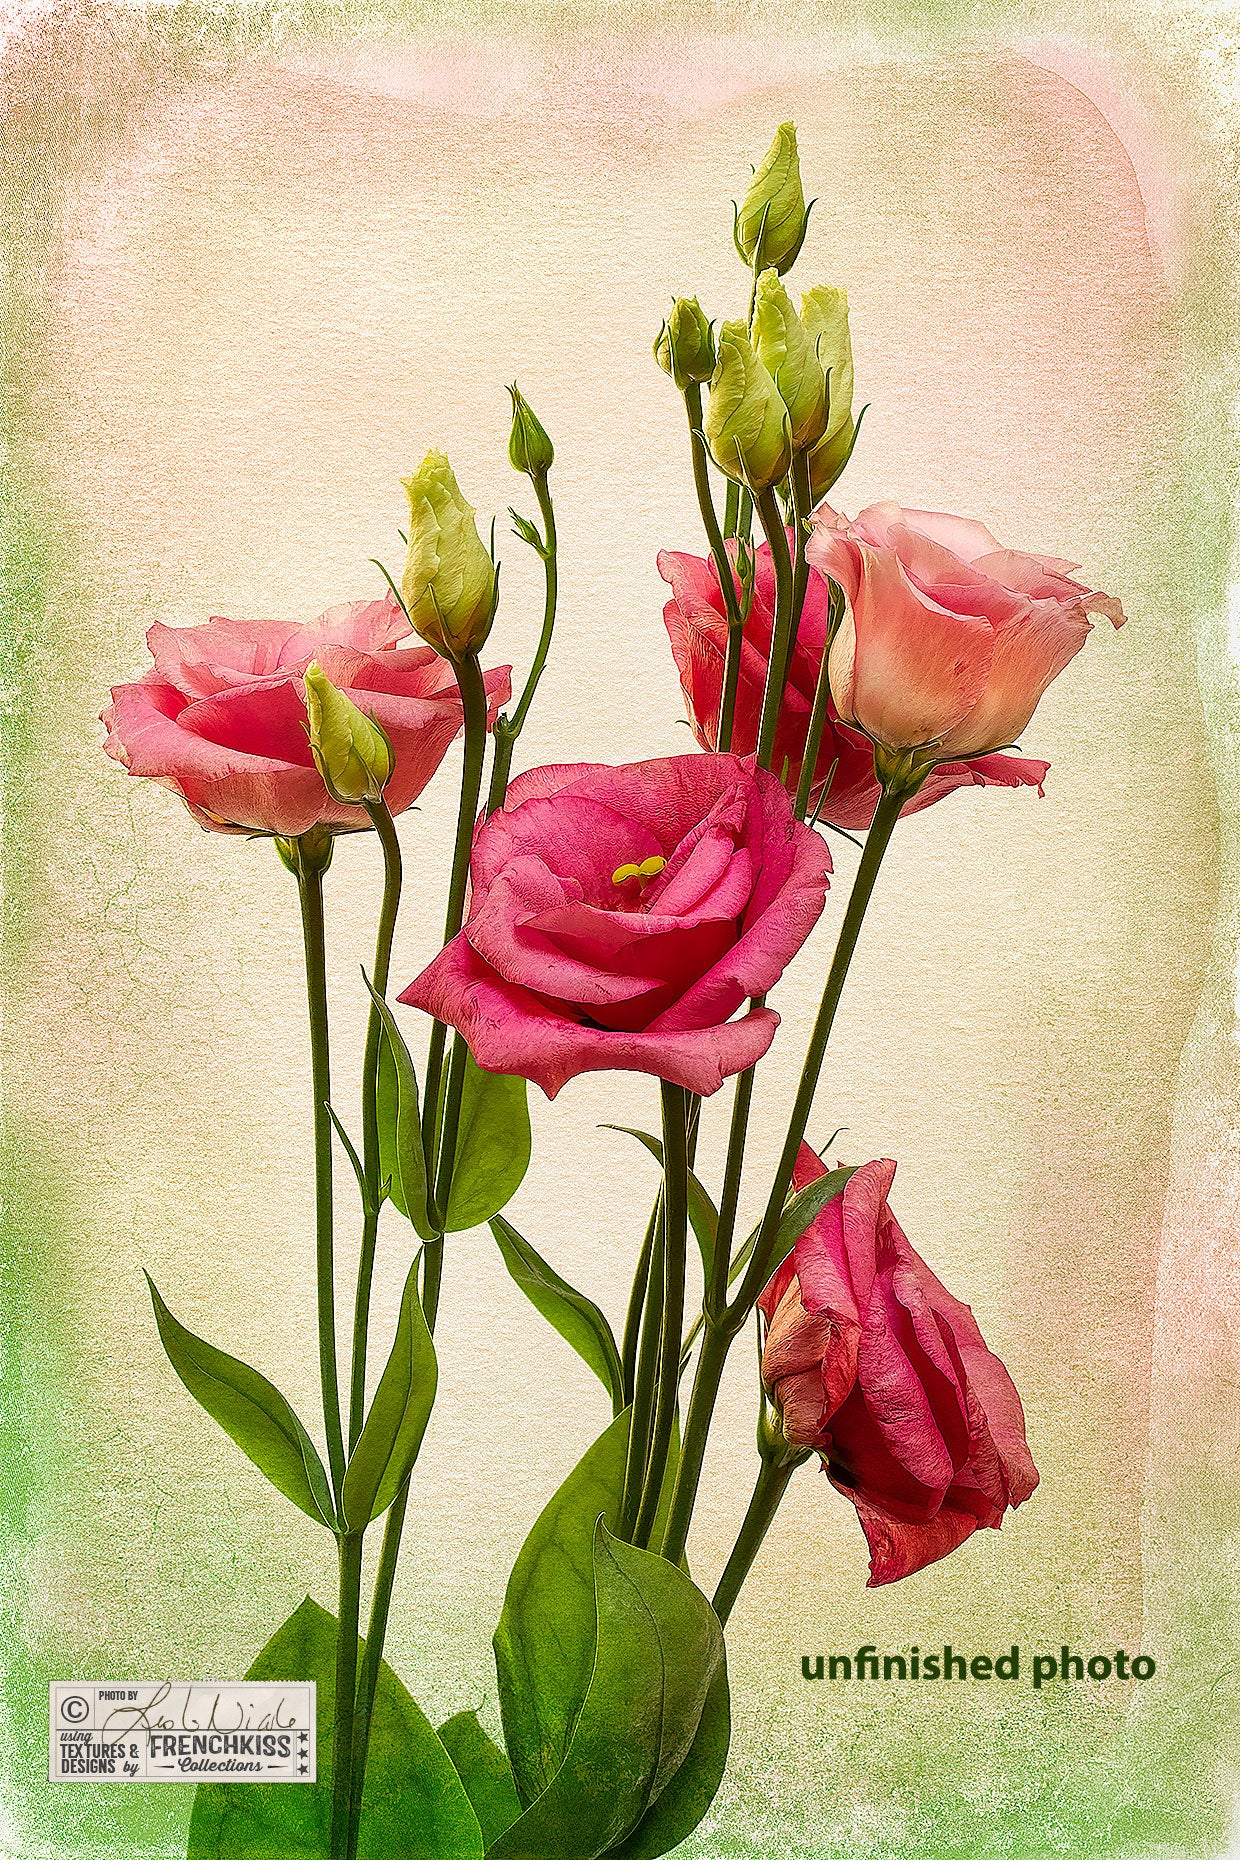 Round 1 edits for this Lisianthus flowers photograph with textures and filters.